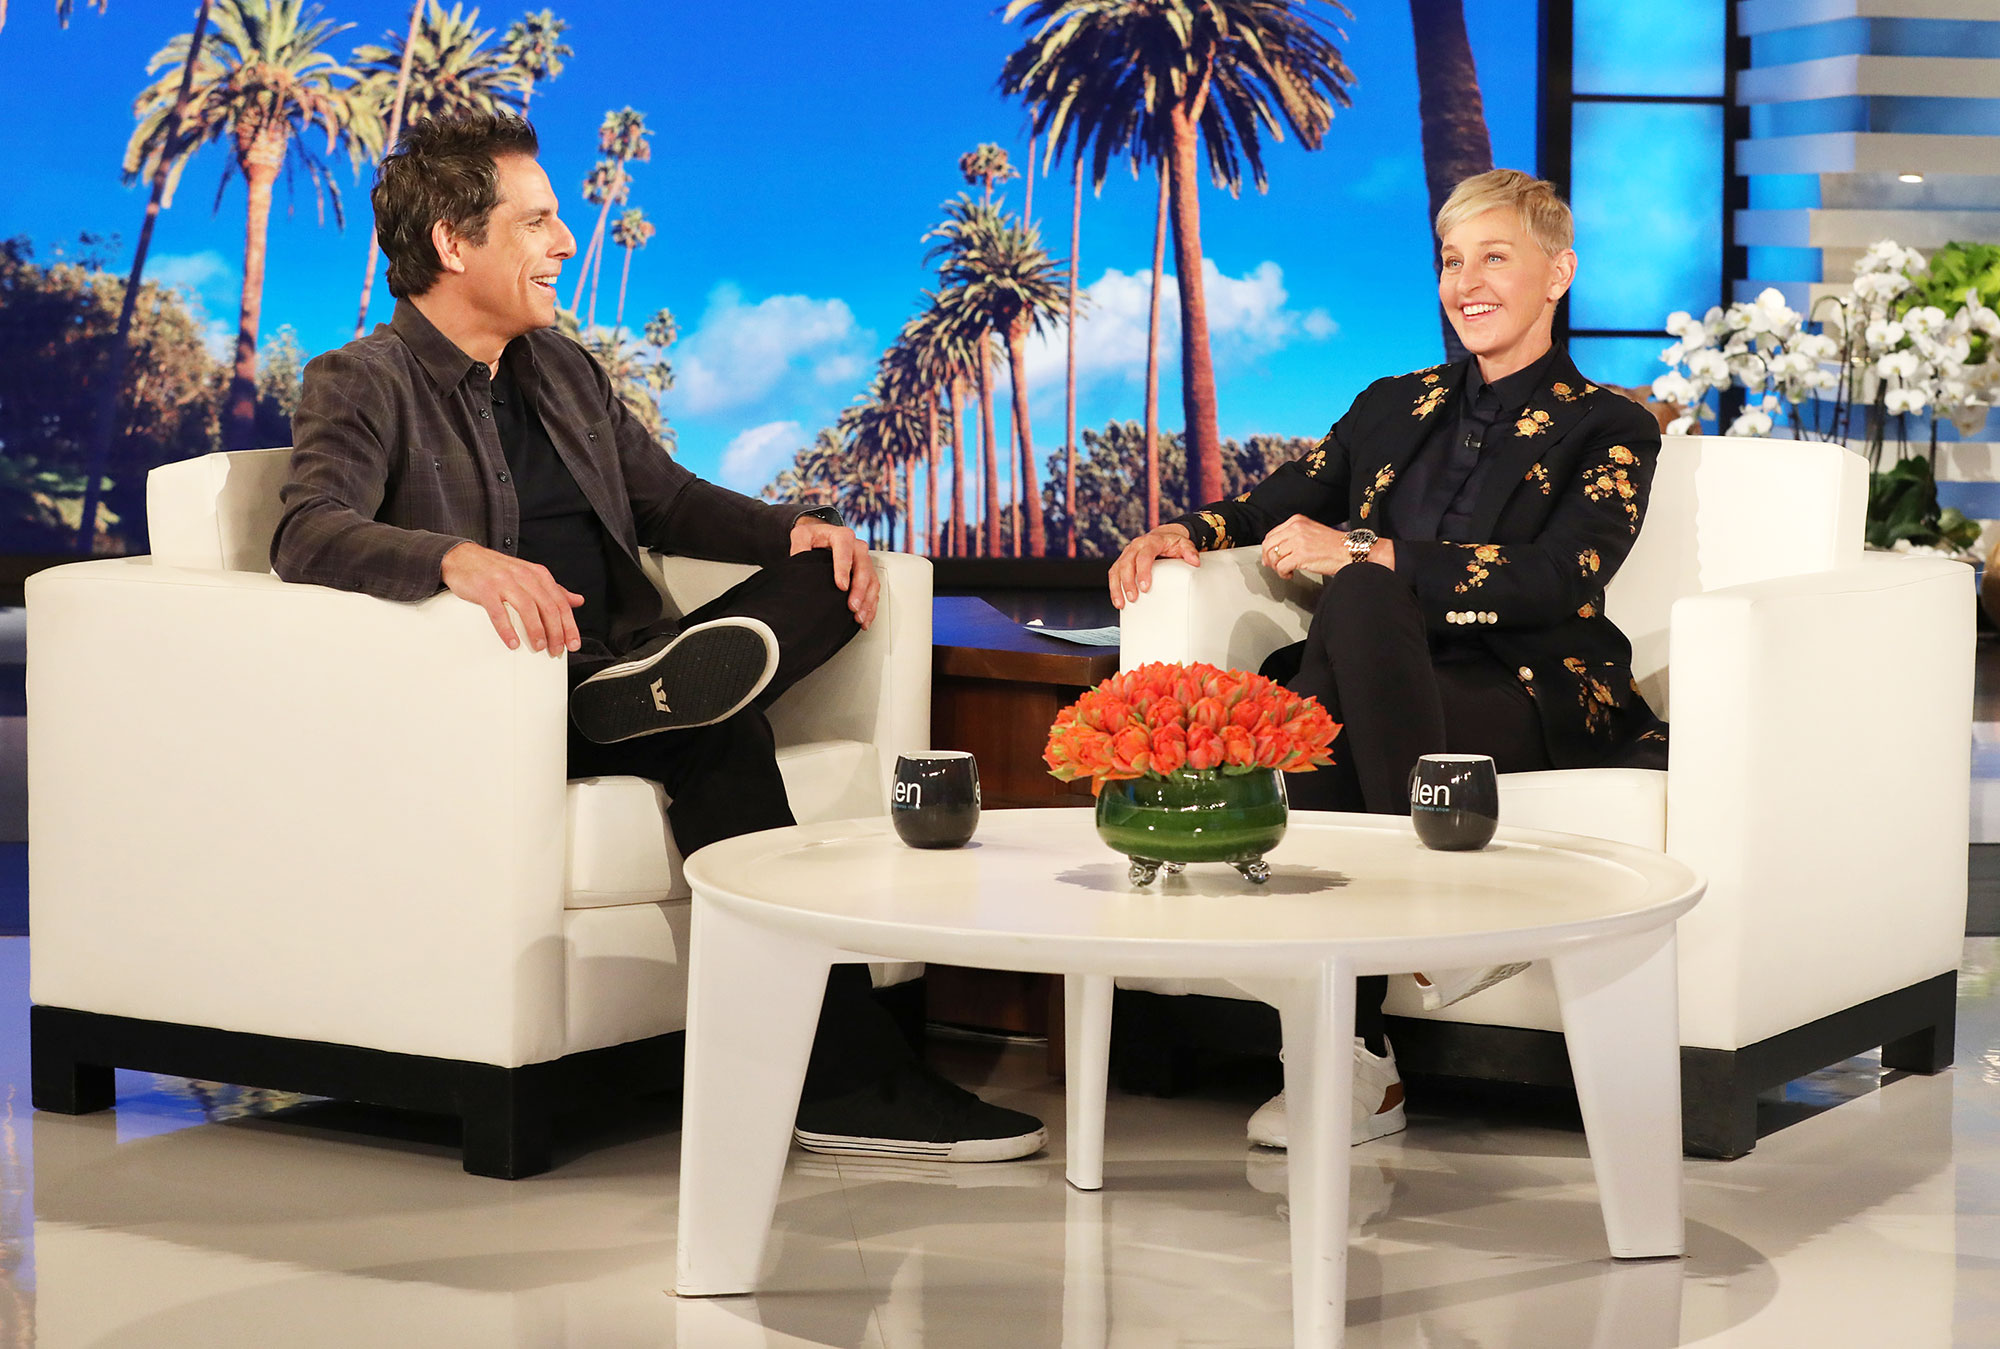 Ben Stiller Jokes Daughter Ella Football Scholarship Yale The Ellen DeGeneres Show